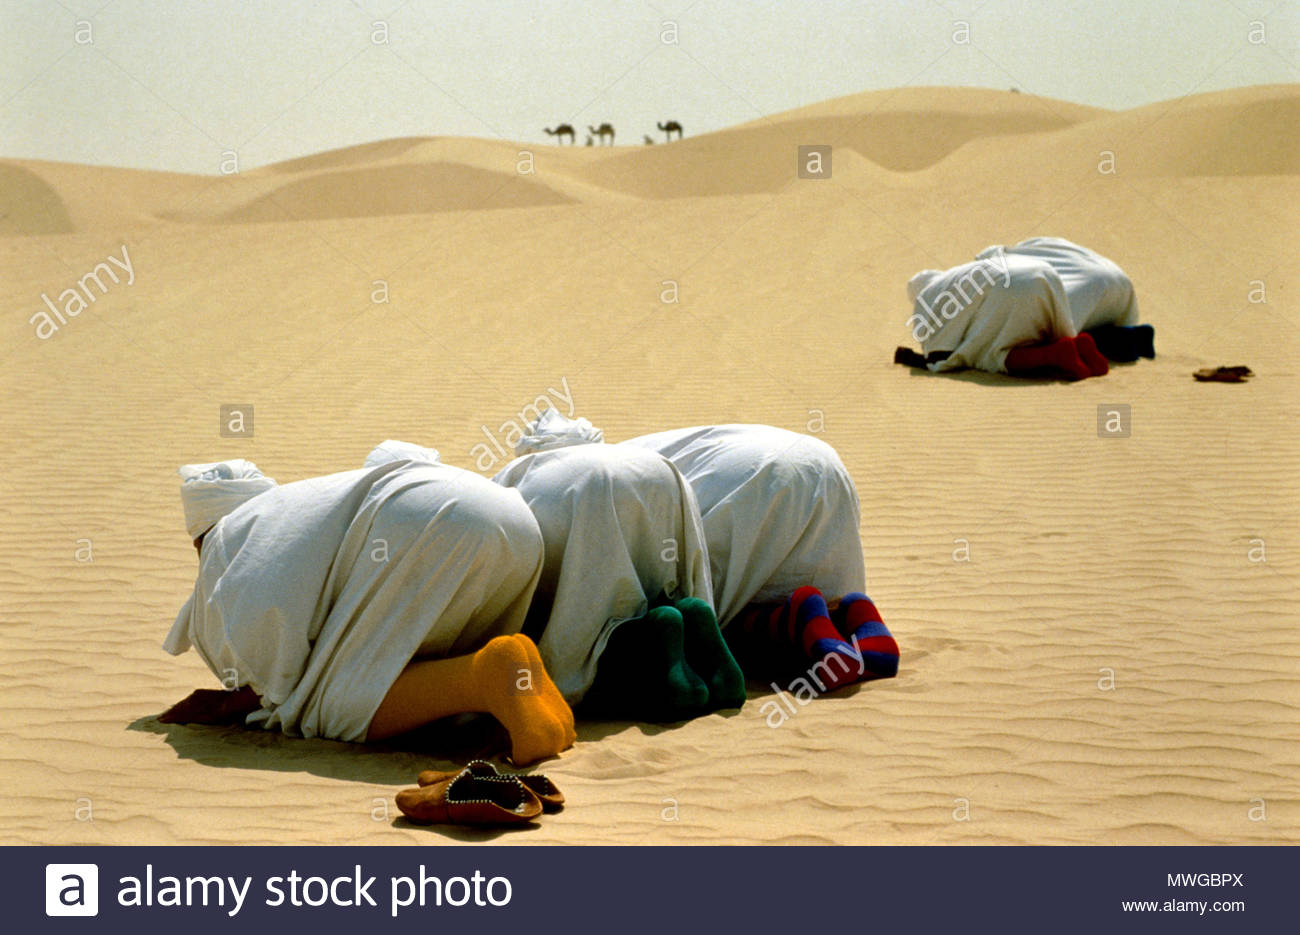 Moslems praying in desert, camels in distance. - Stock Image